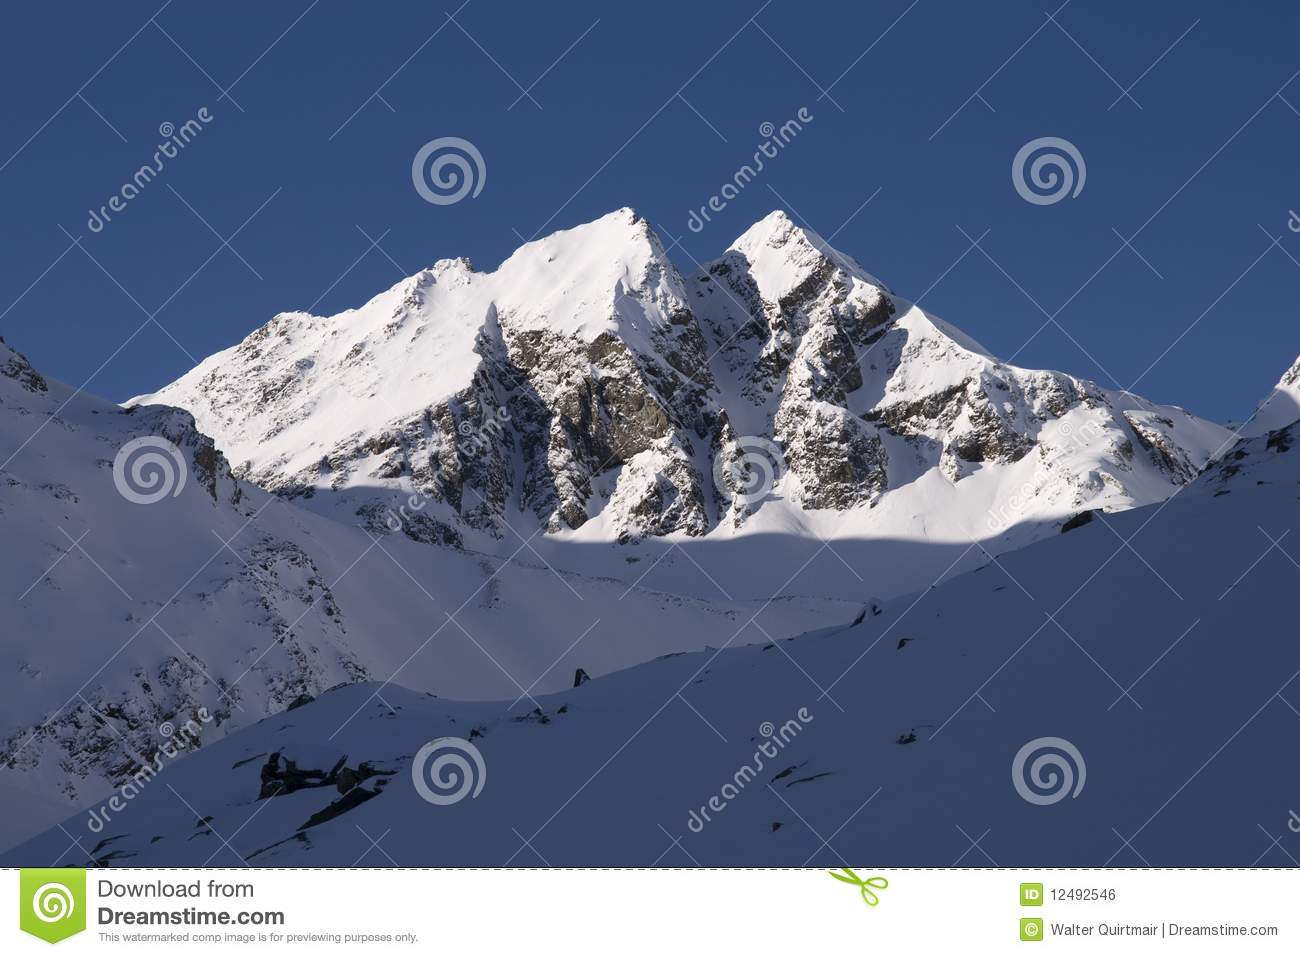 Two Similar Mountain Peaks In The Alps